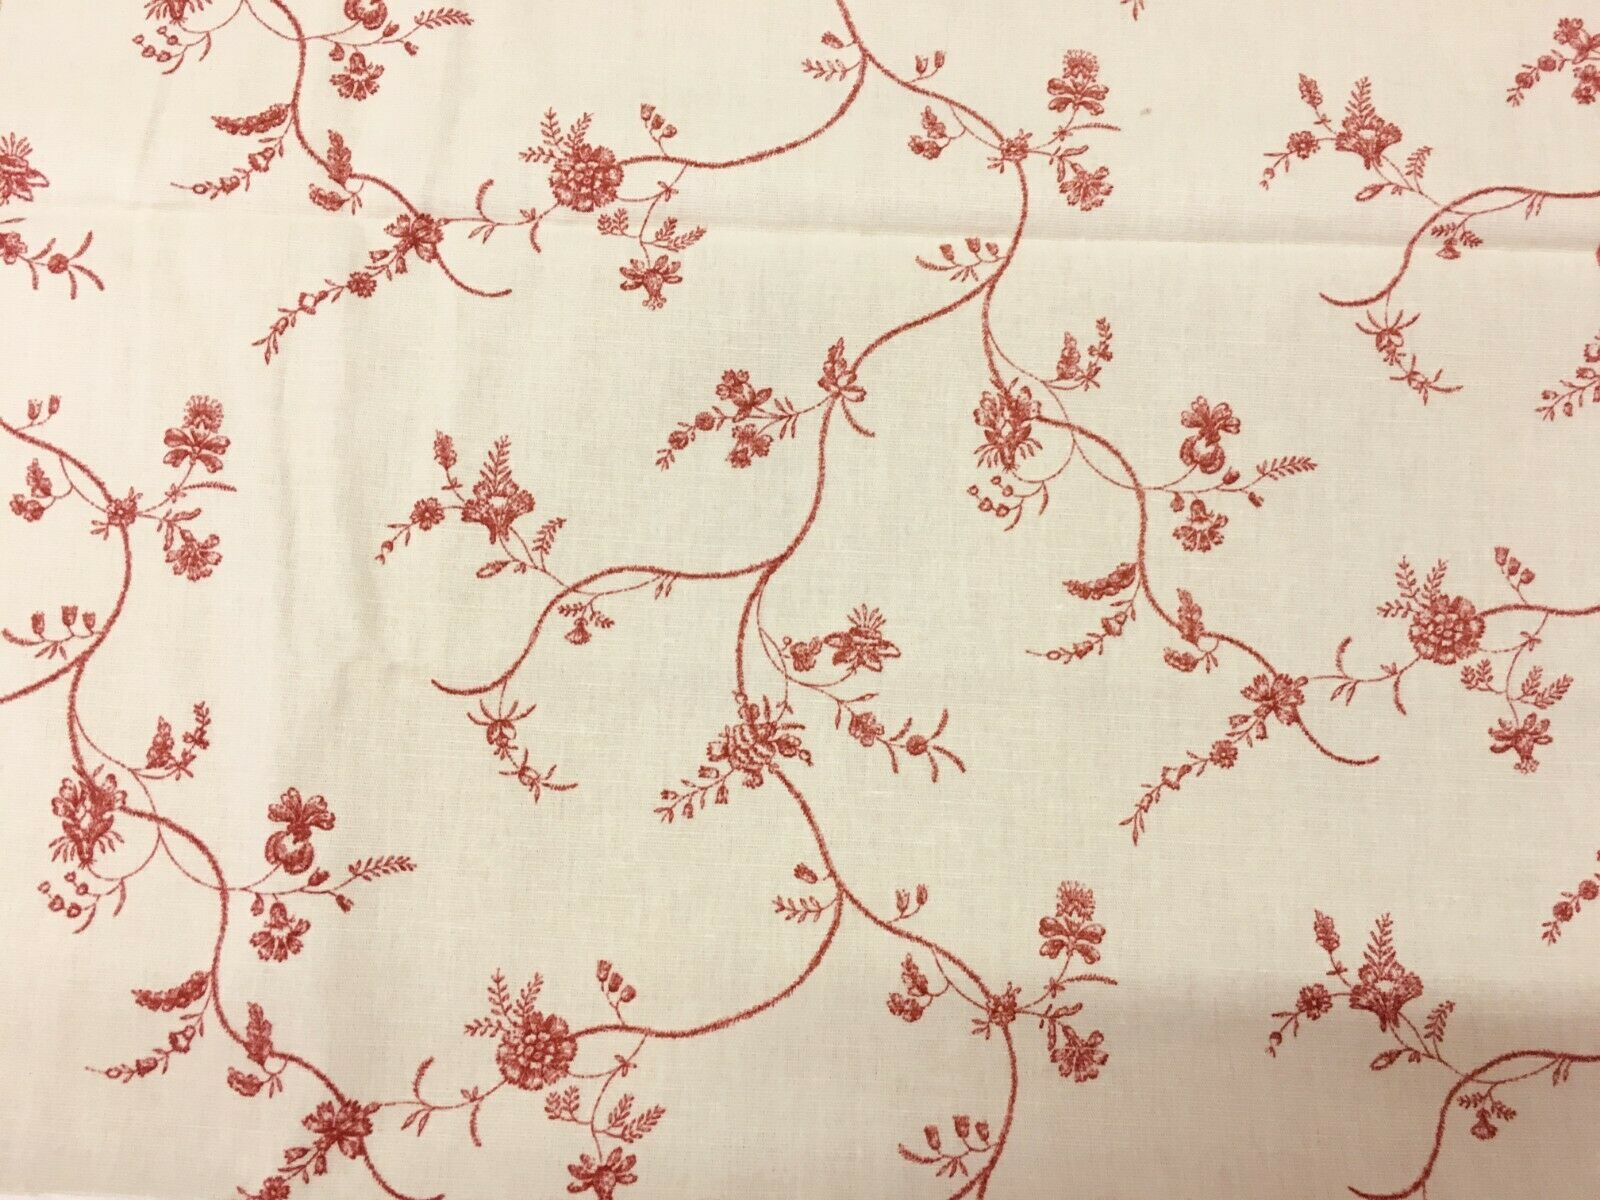 Laura Ashley English Country Print Red and Cream Floral Print Fabric 1.375 yards